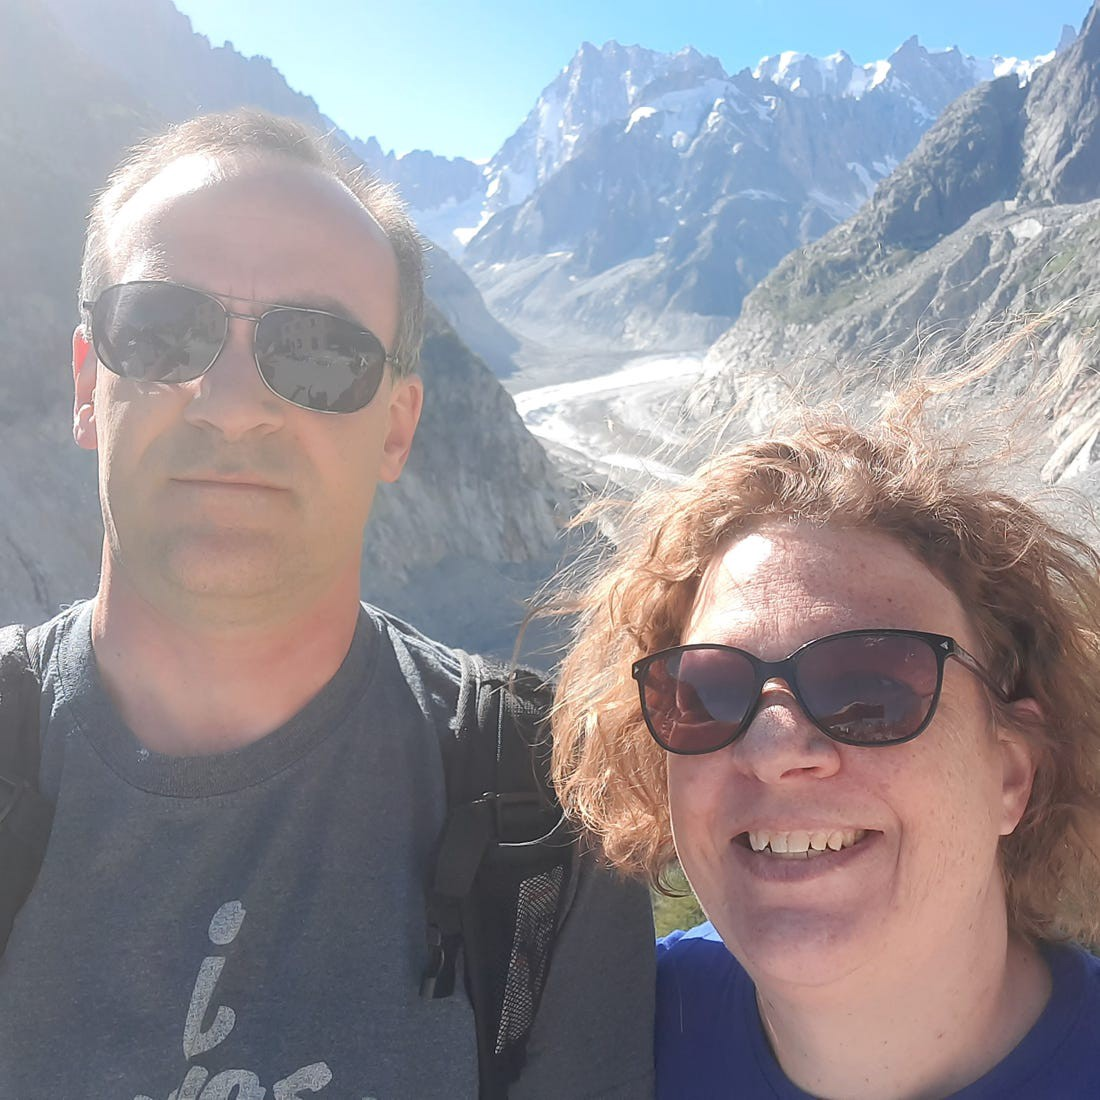 Claudia Clark and her husband are seen in Chamonix, France, in July 2020. The Clarks currently live in Germany.